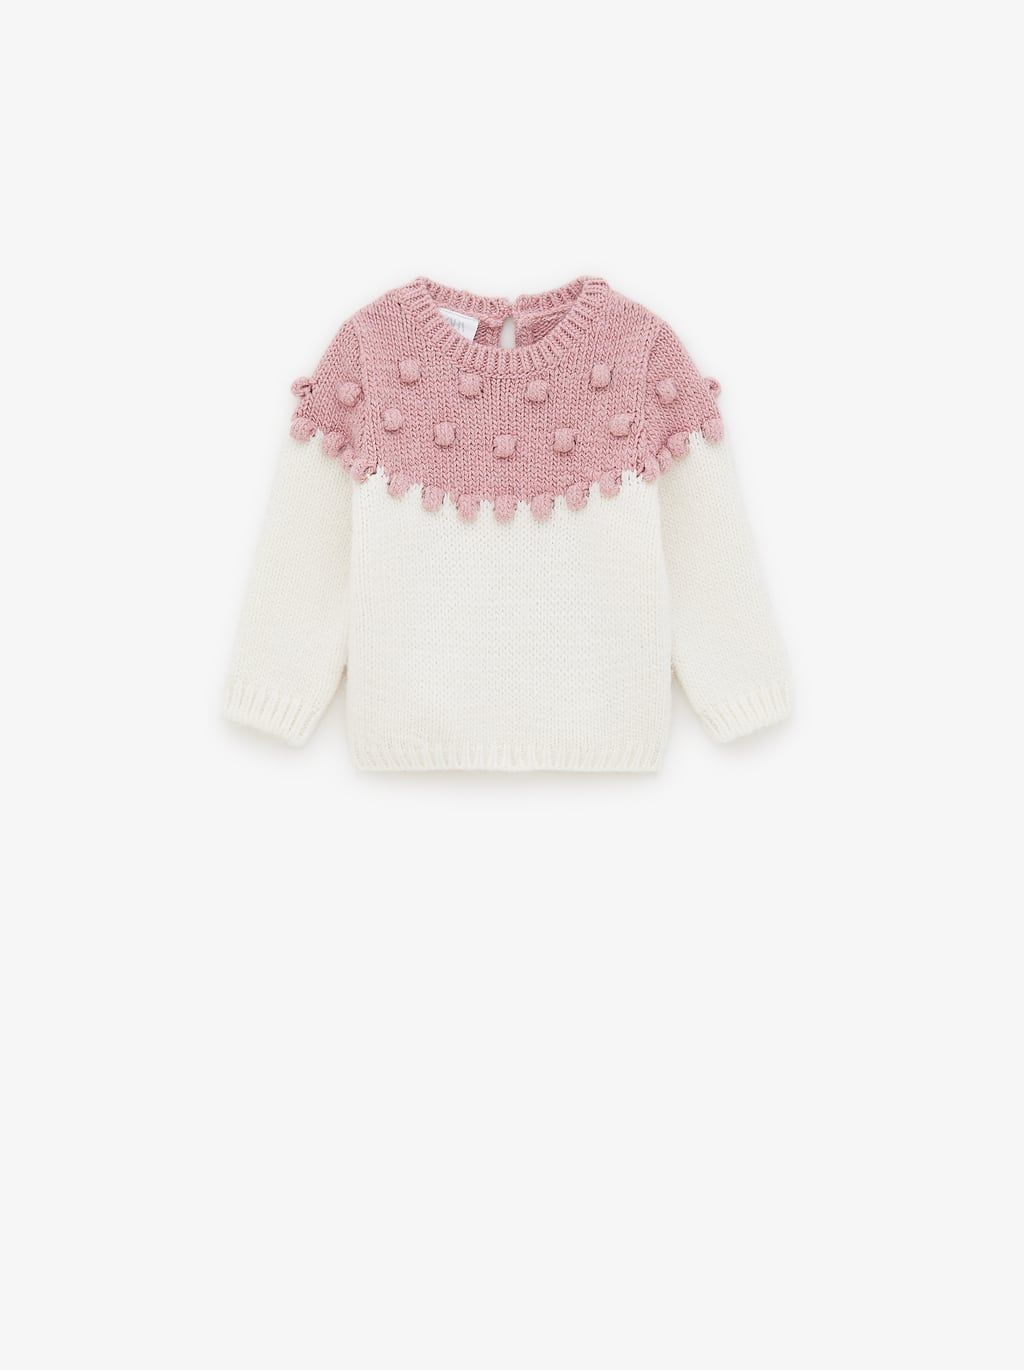 KNIT SWEATER WITH EMBROIDERED BALLS ,  #Balls #Embroidered #Knit #Sweater #zarakidsleggings